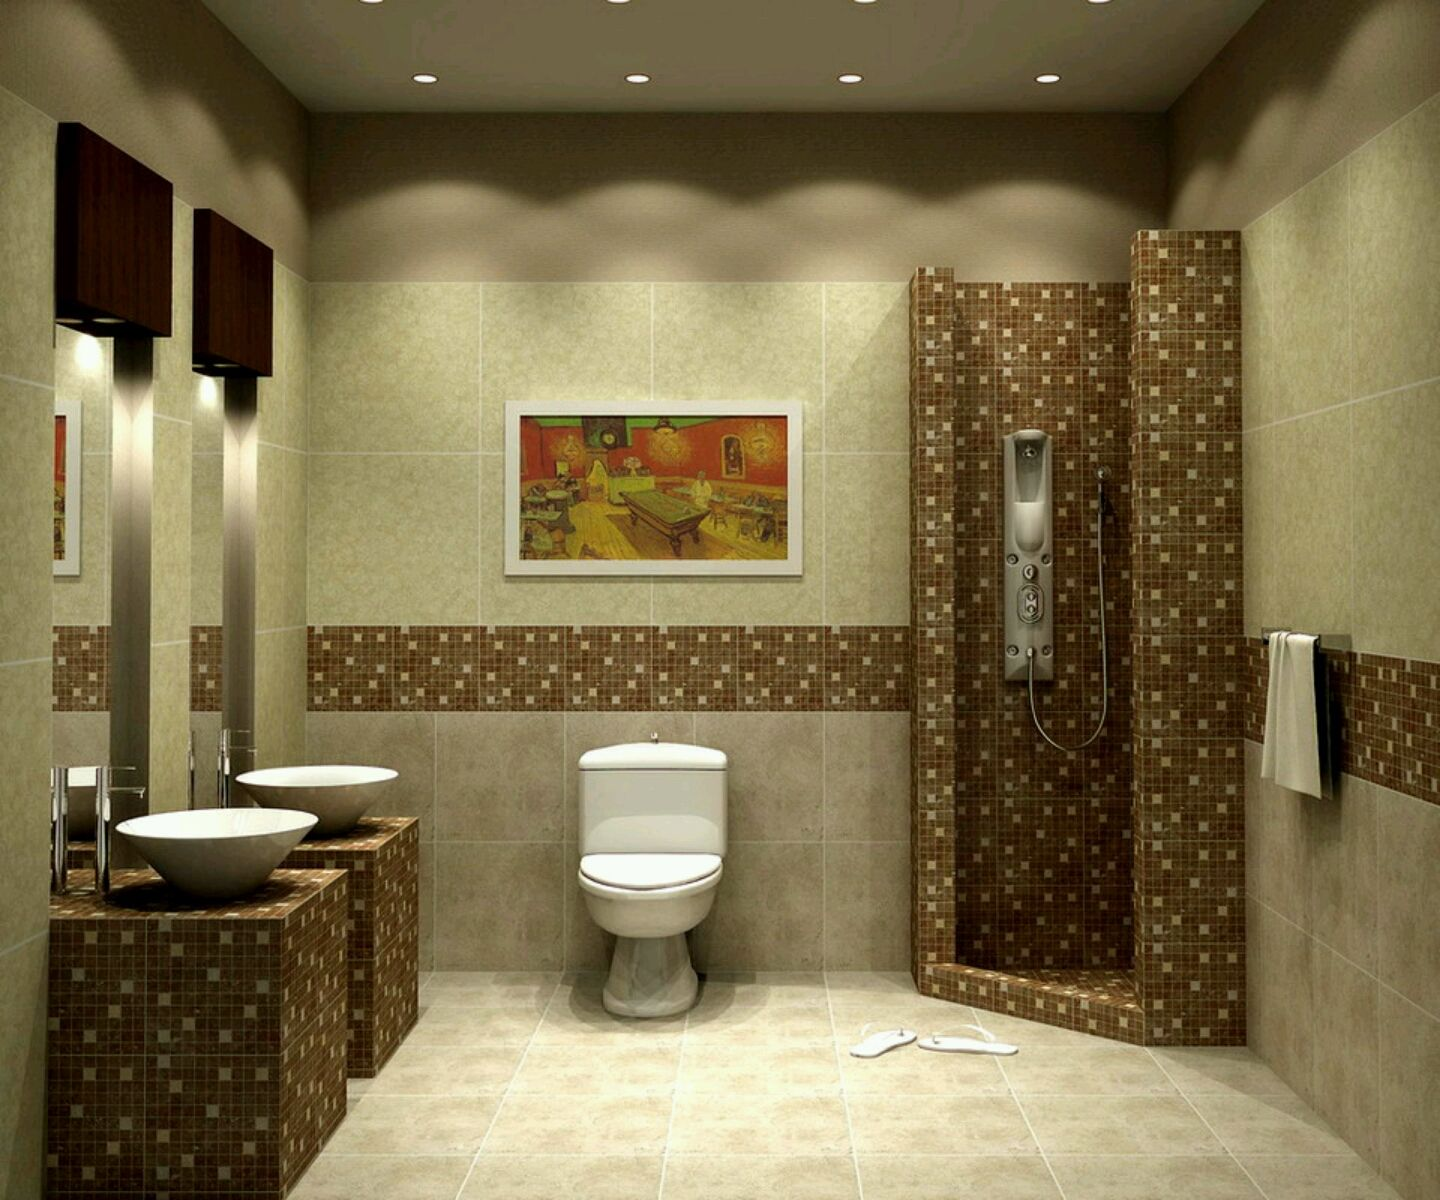 Bathroom Design Ideas bathroom ideas small ensuite | home decorating ideasbathroom